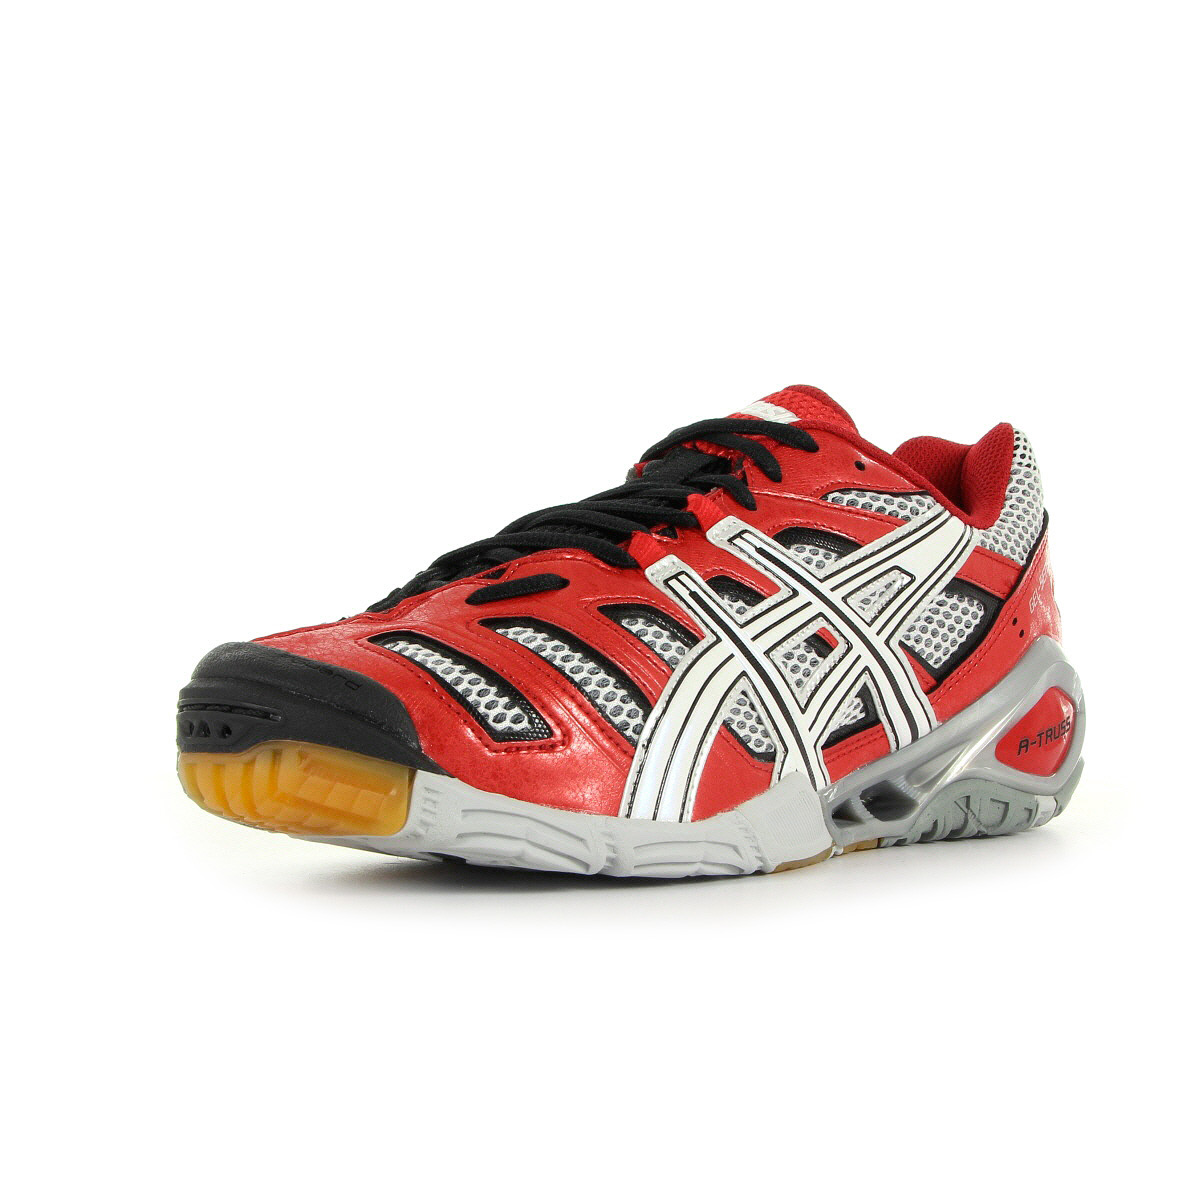 chaussures handball asics homme gel sensei 4 taille rouge synth tique lacets ebay. Black Bedroom Furniture Sets. Home Design Ideas